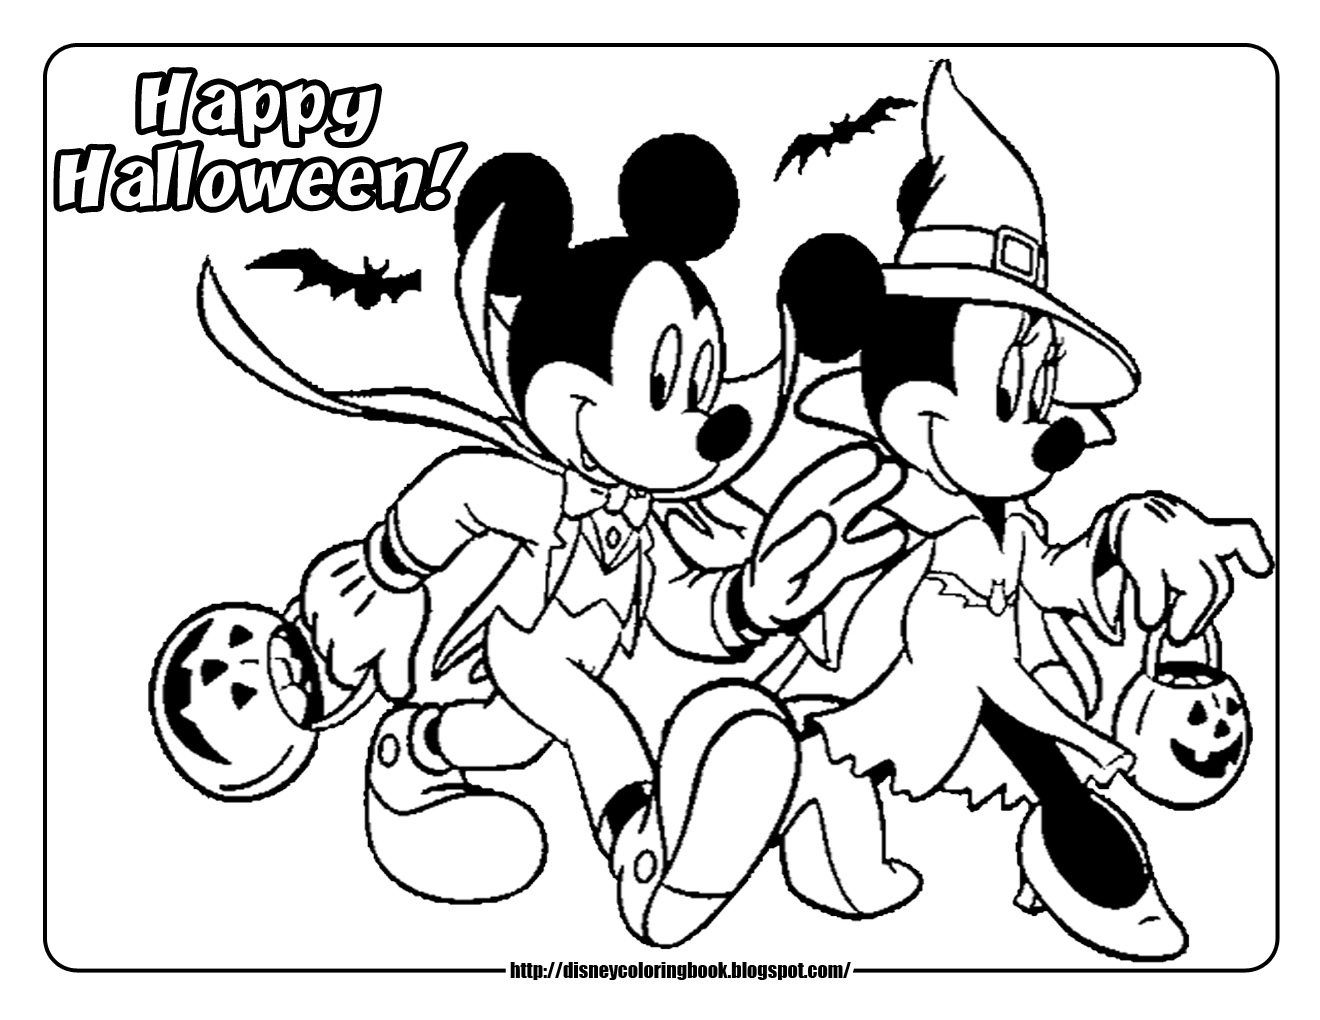 Disney Coloring Pages And Sheets For Kids Mickey And Friends Halloween 2 Free Disney Halloween